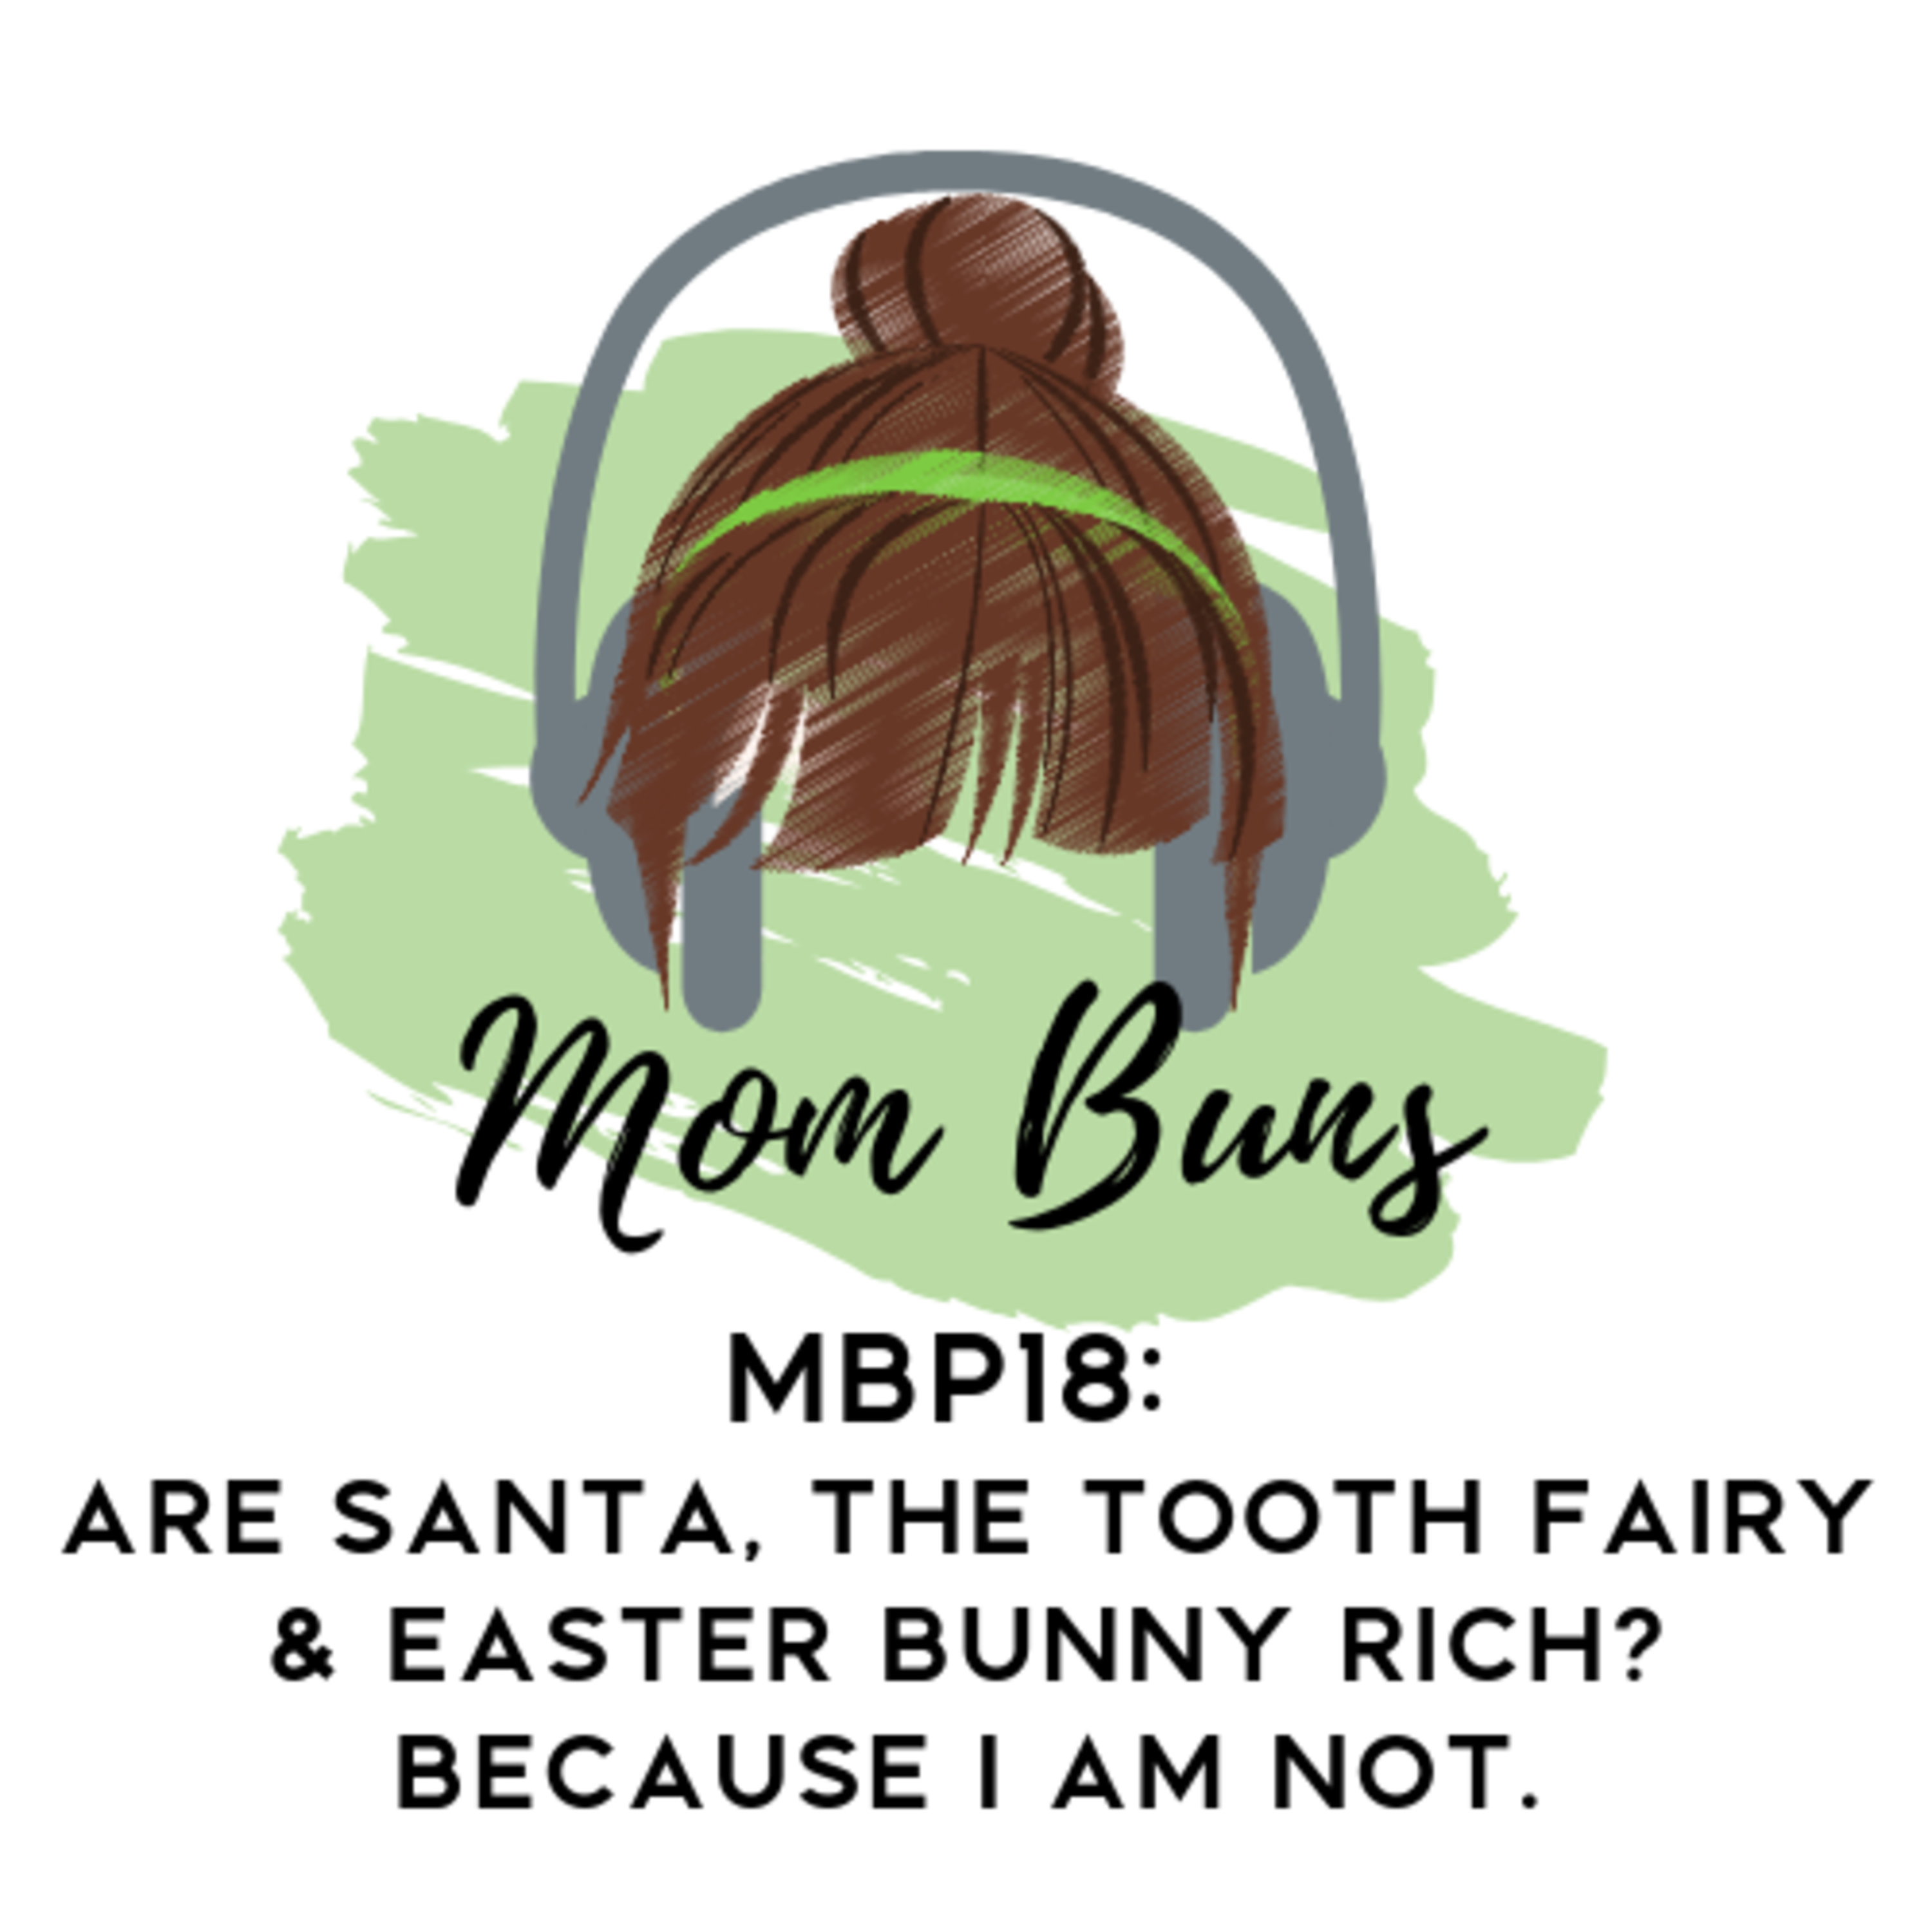 18. Are Santa, The Tooth Fairy & The Easter Bunny Rich? Because I Am Not.